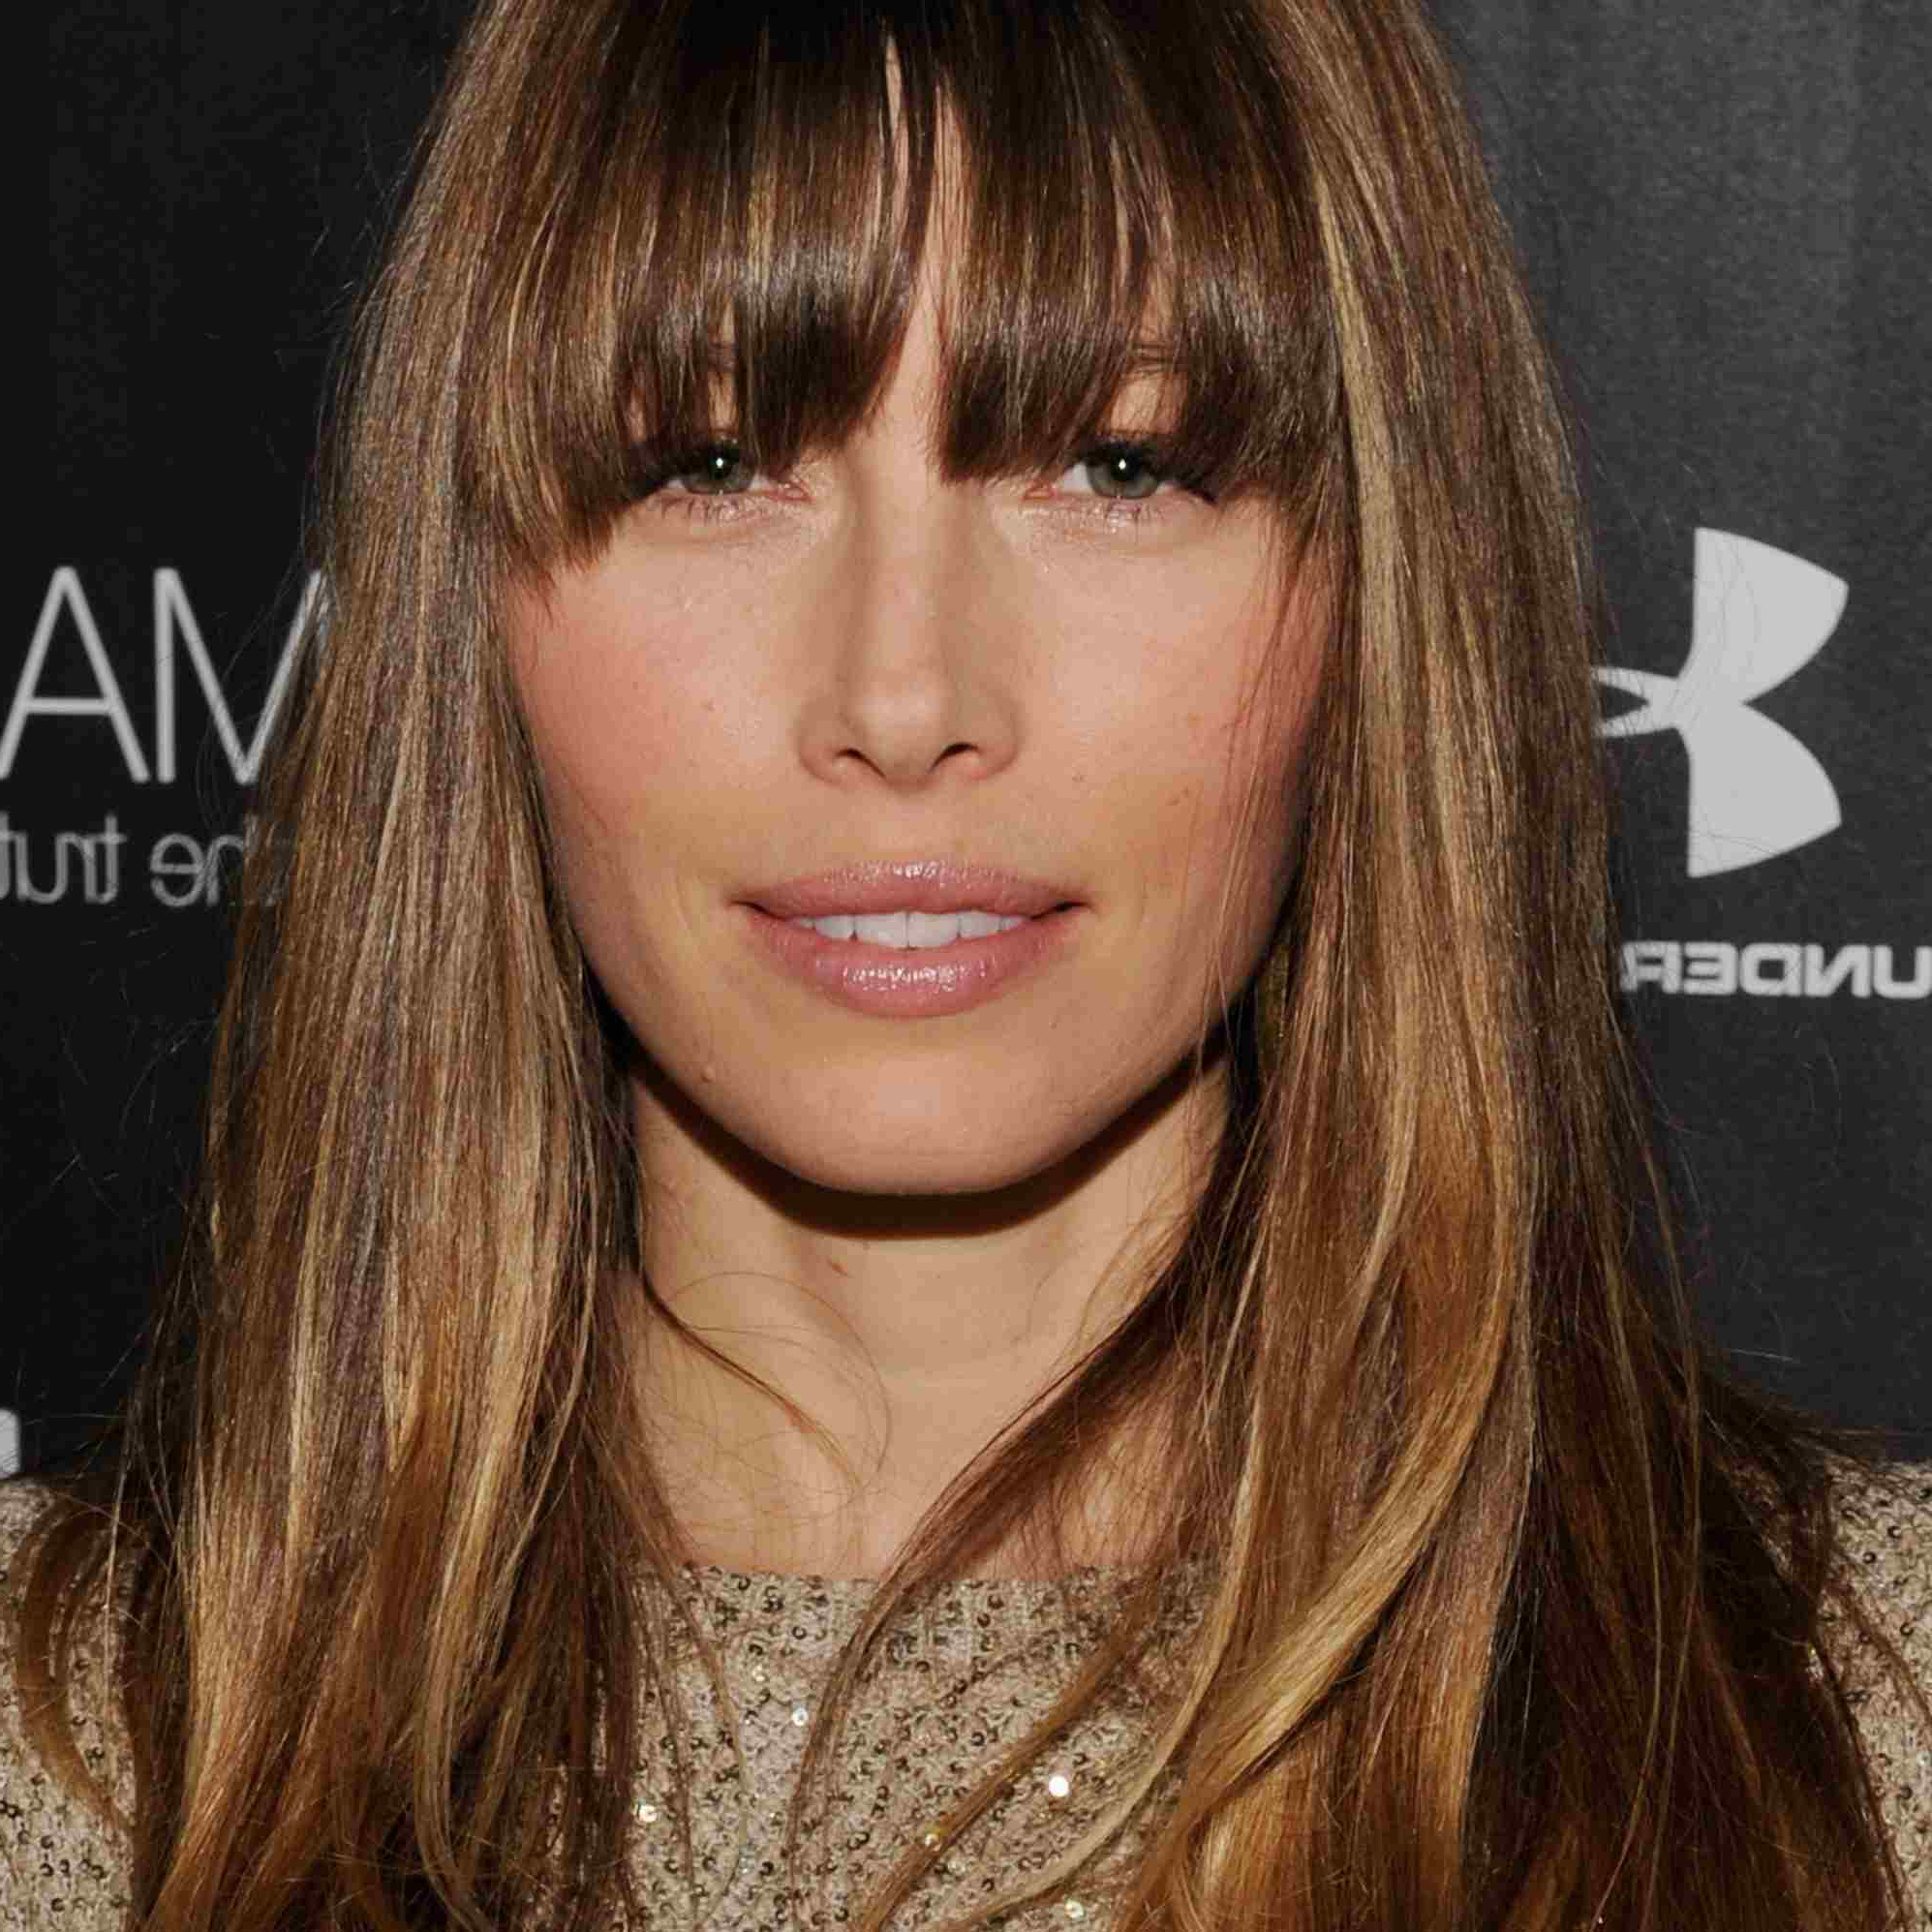 Widely Used Long Hair And Blunt Bangs Hairstyles For The Best Hairstyles For Women In Their 30S, As Pictured On Celebrities (View 20 of 20)